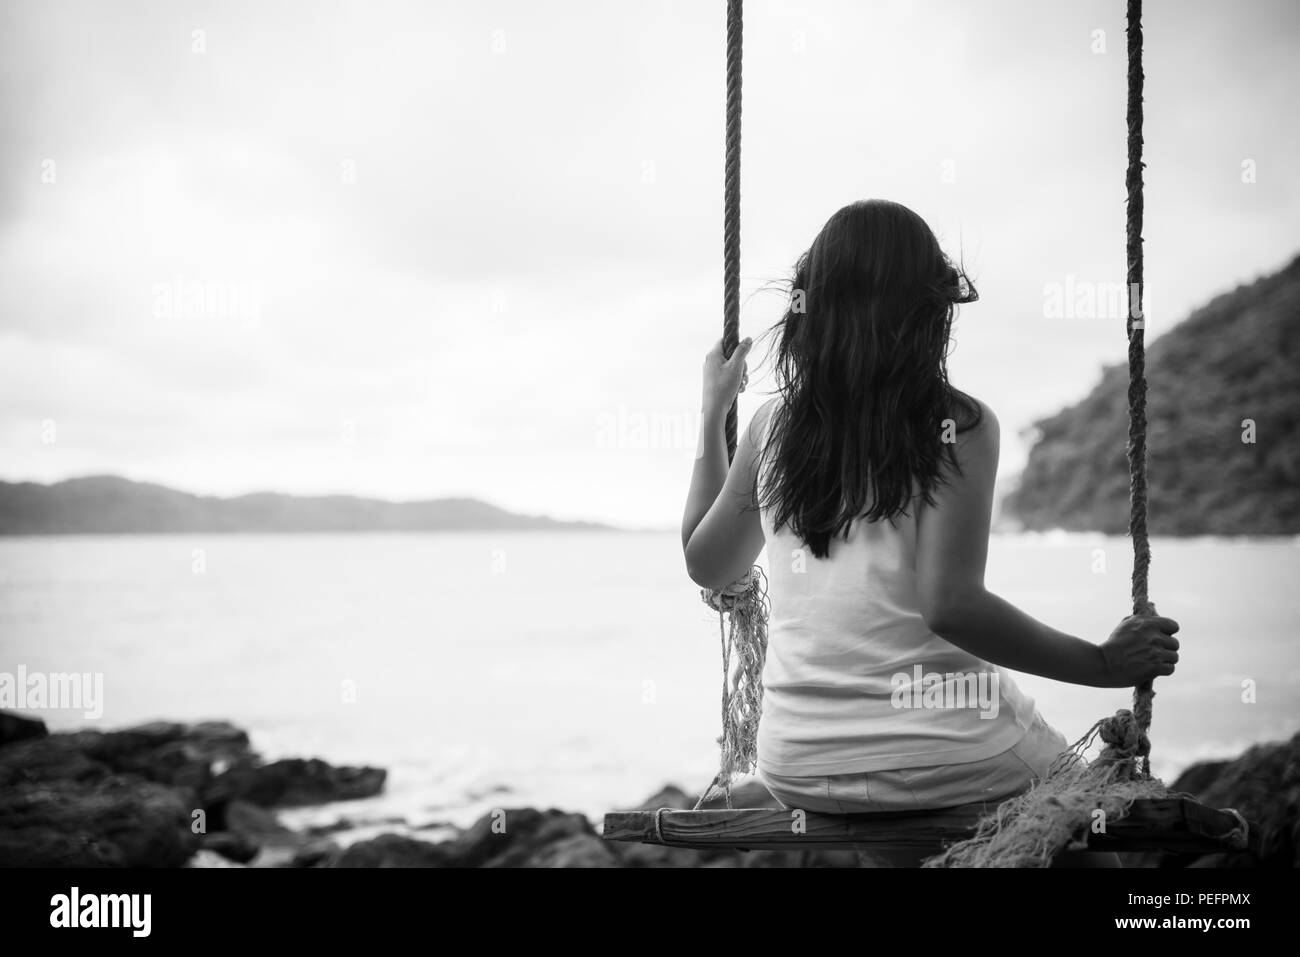 Black and white of sad and lonely woman sitting alone on a